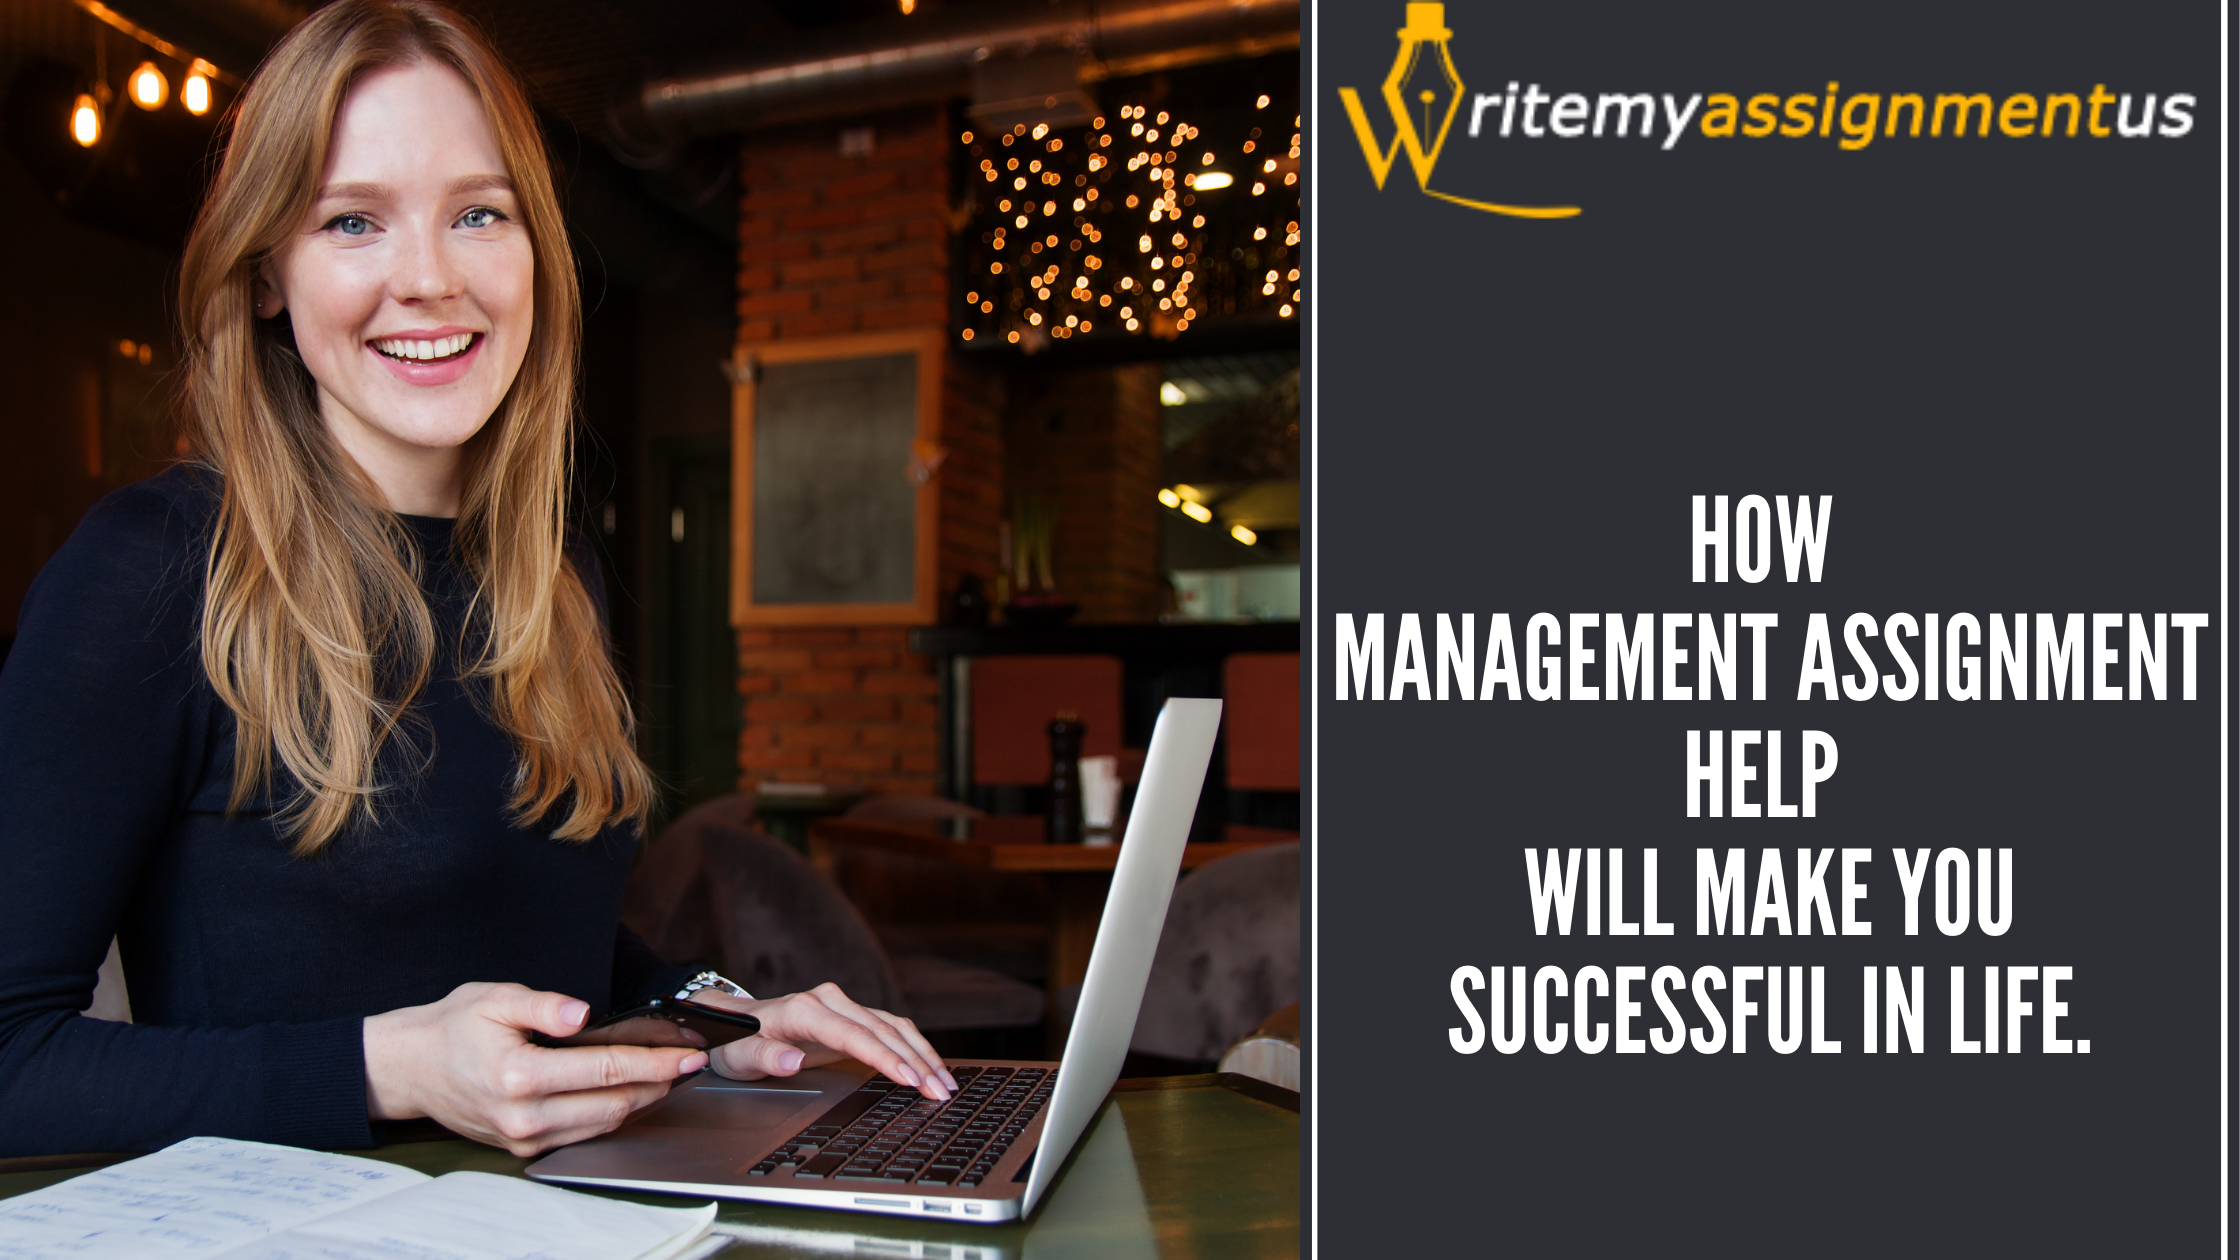 How Management Assignment Help will make you successful in academic life?